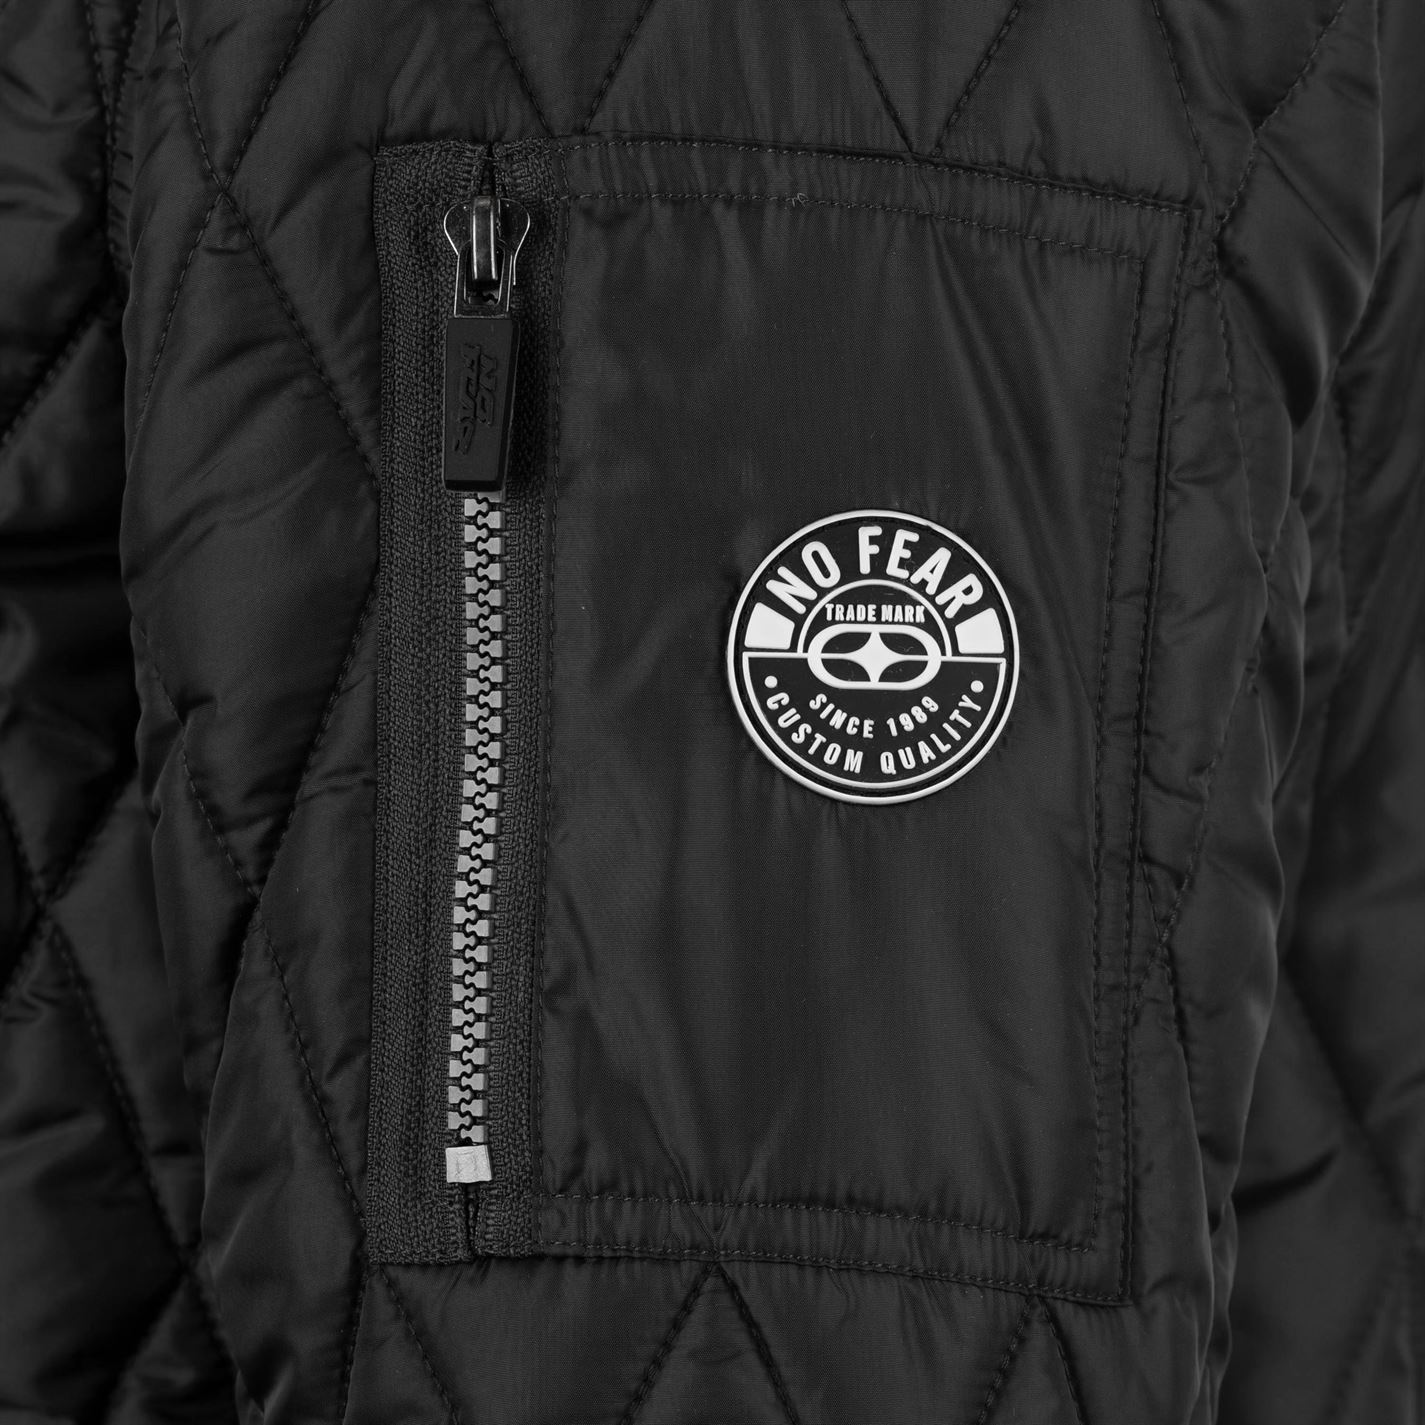 No-Fear-Quilted-Bomber-Jacket-Mens-Gents-Coat-Top-Full-Length-Sleeve-Zip-Zipped thumbnail 7